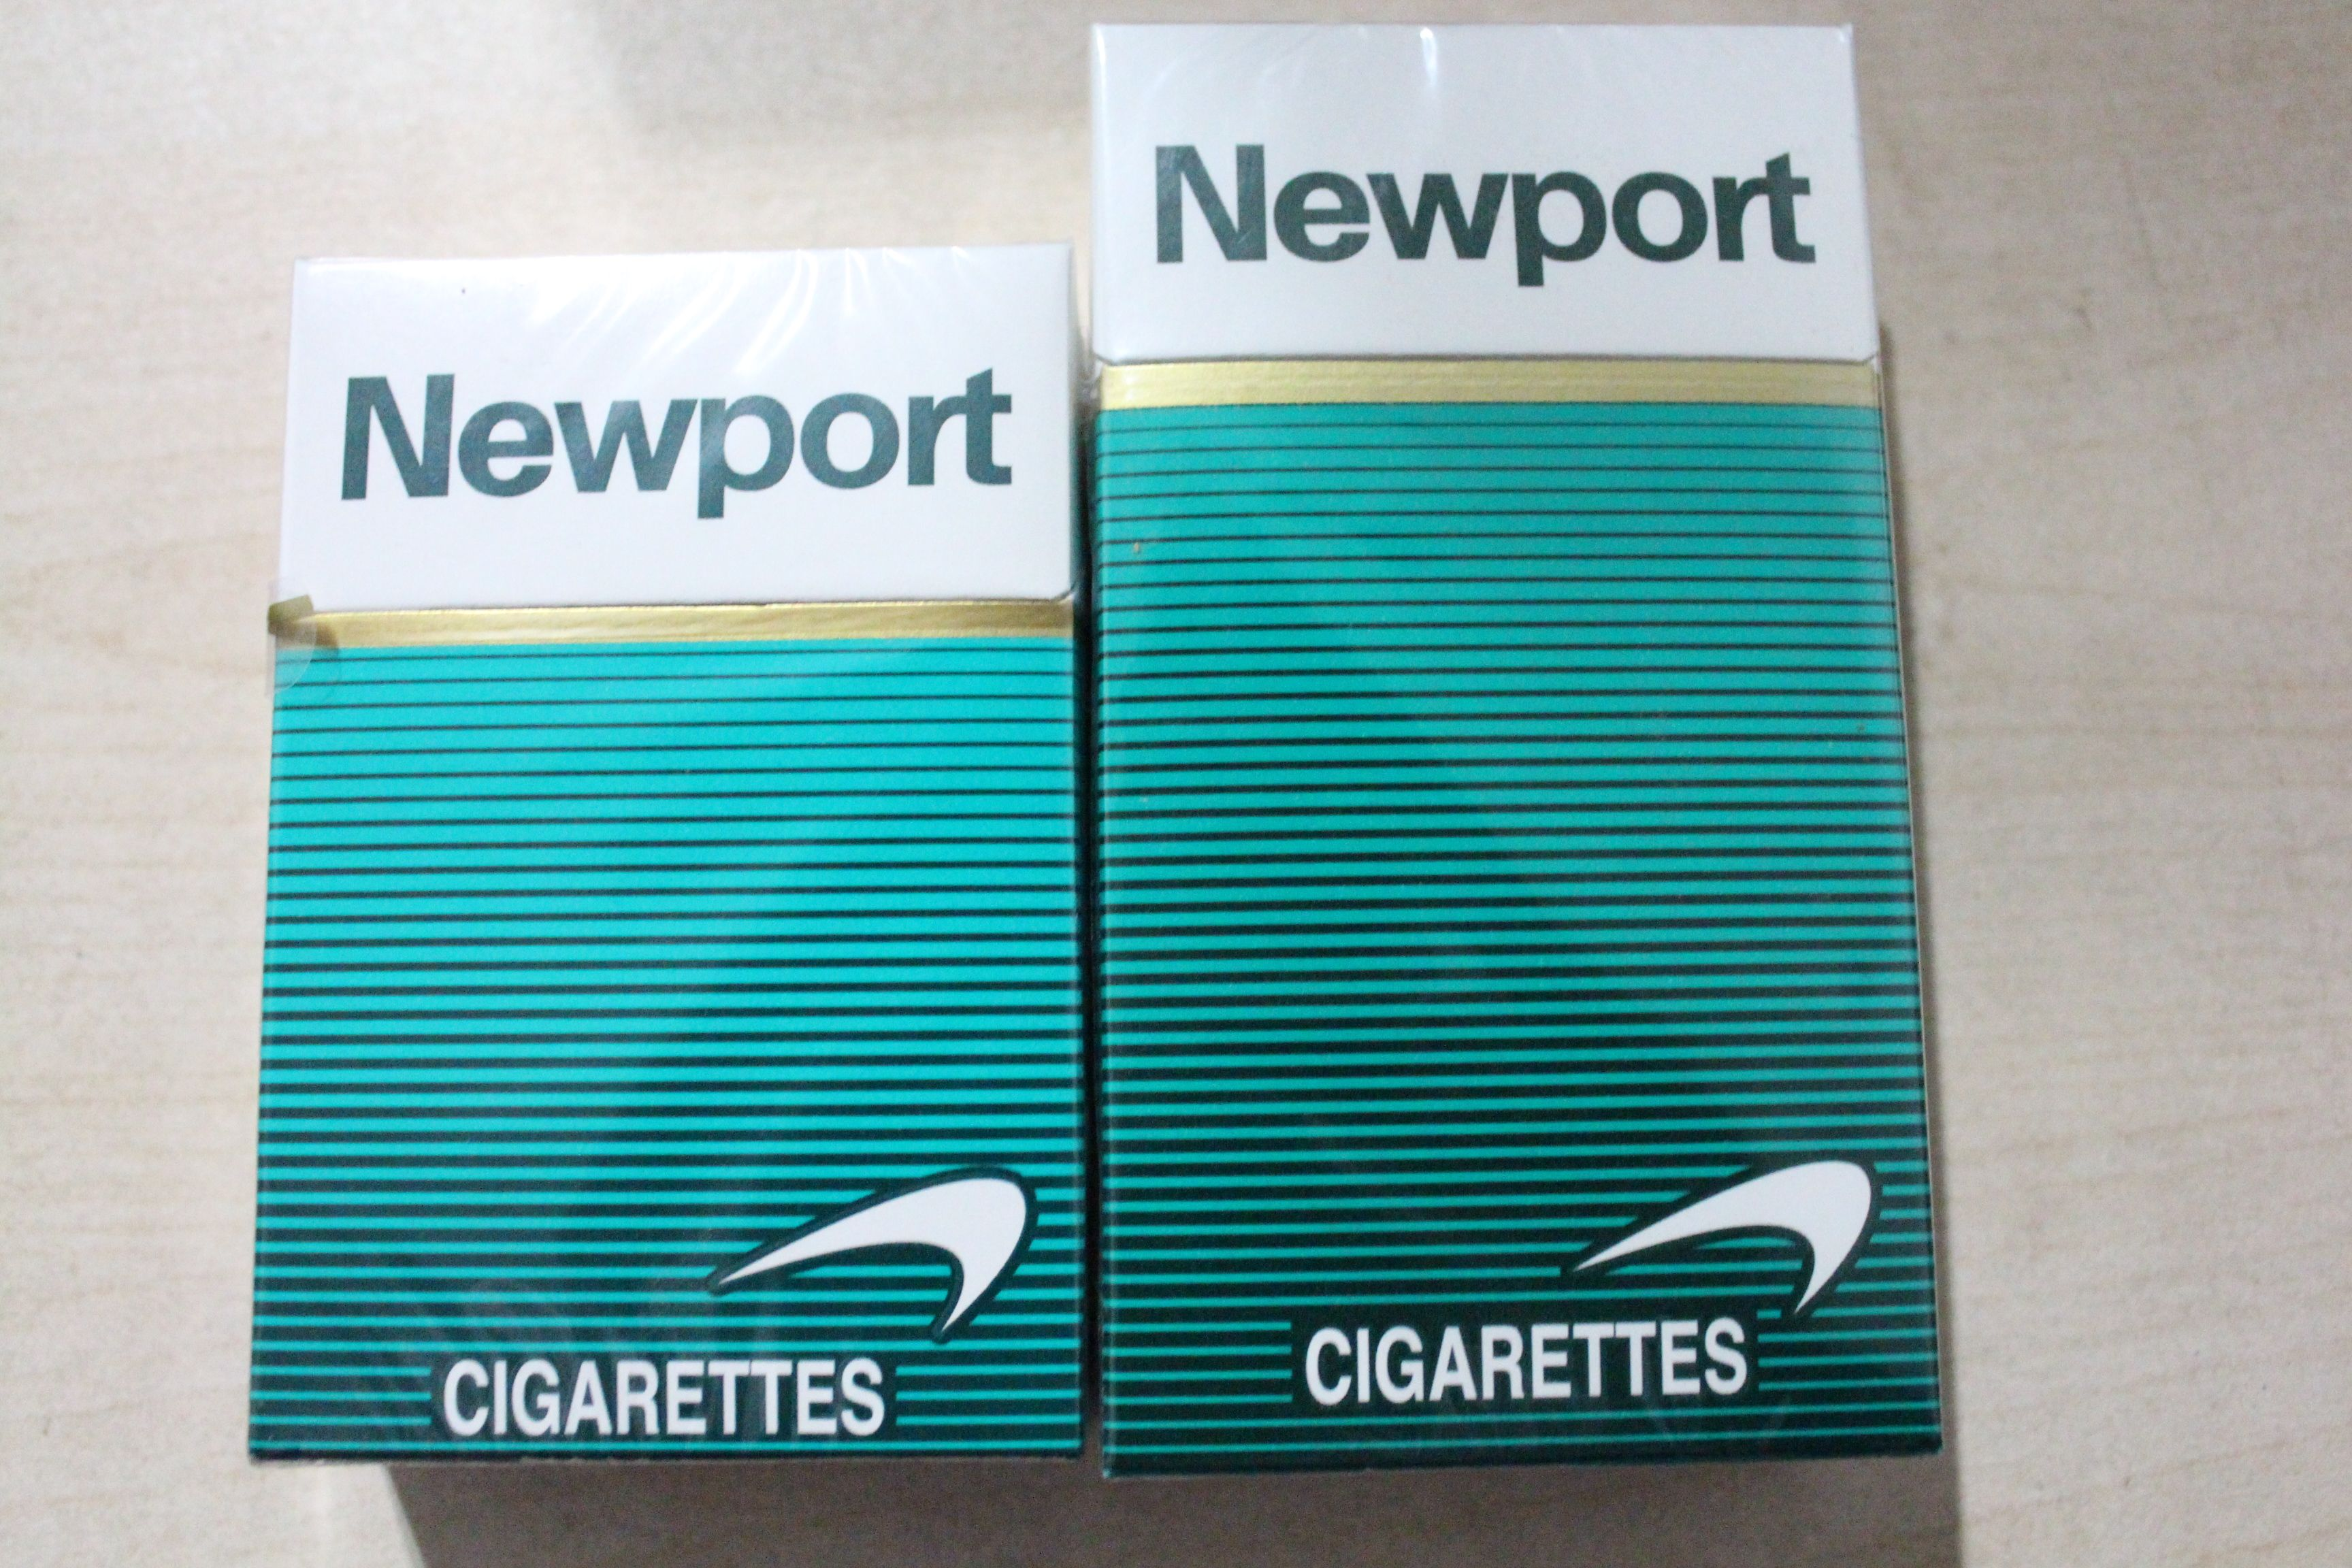 graphic regarding Newport Cigarettes Coupon Printable called Newport Cigarette Coupon codes On-line - 12 months of Contemporary H2o